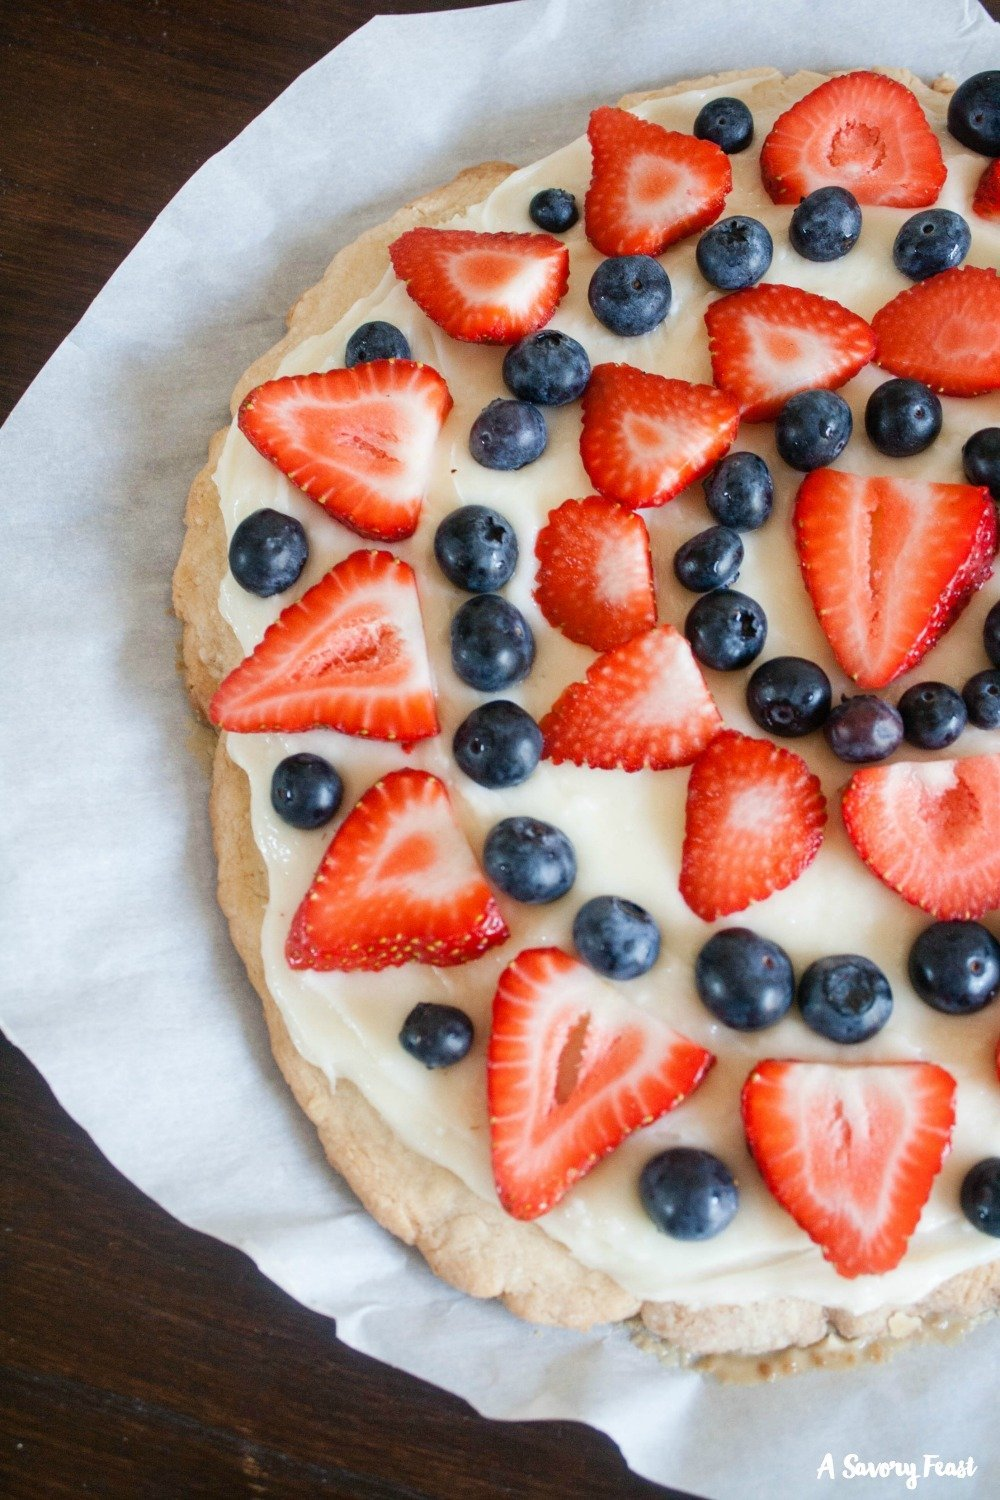 Try this patriotic treat for your 4th of July party! This twist on fruit pizza features an egg free sugar cookie crust topped with a simple cream cheese frosting. Strawberries and blueberries are the finishing touch on this red, white and blue dessert.